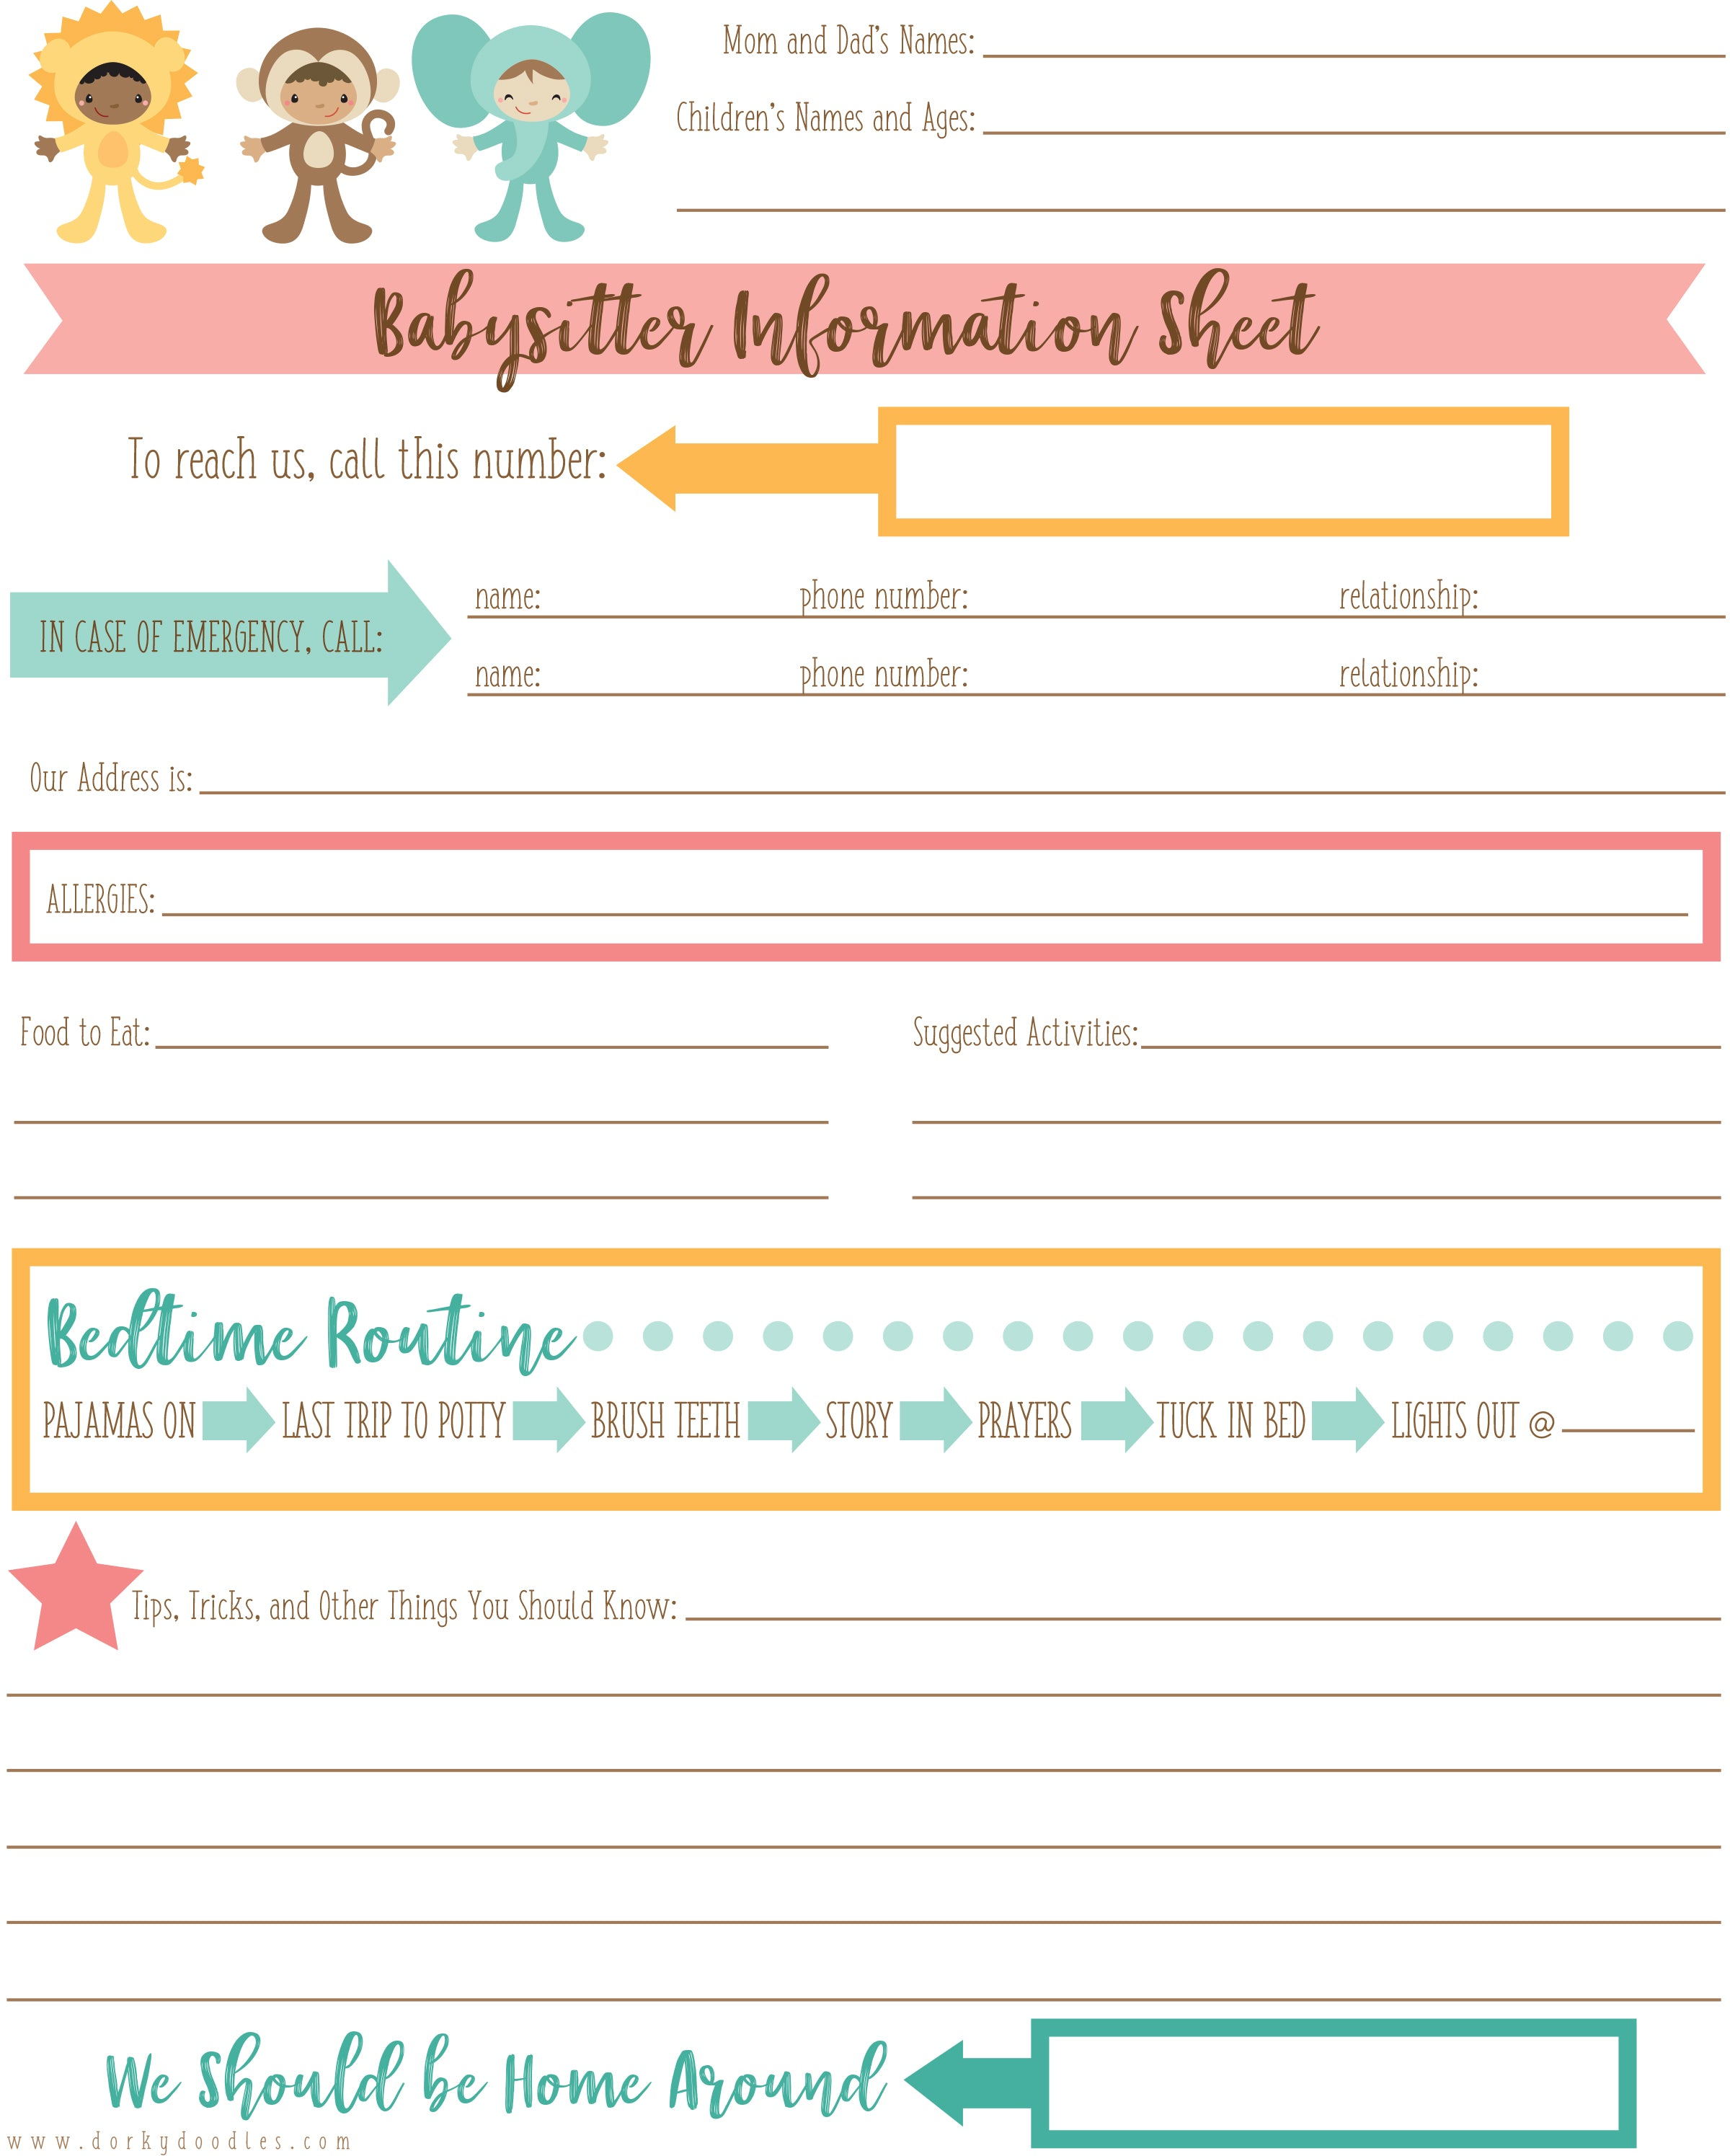 babysitter information printable